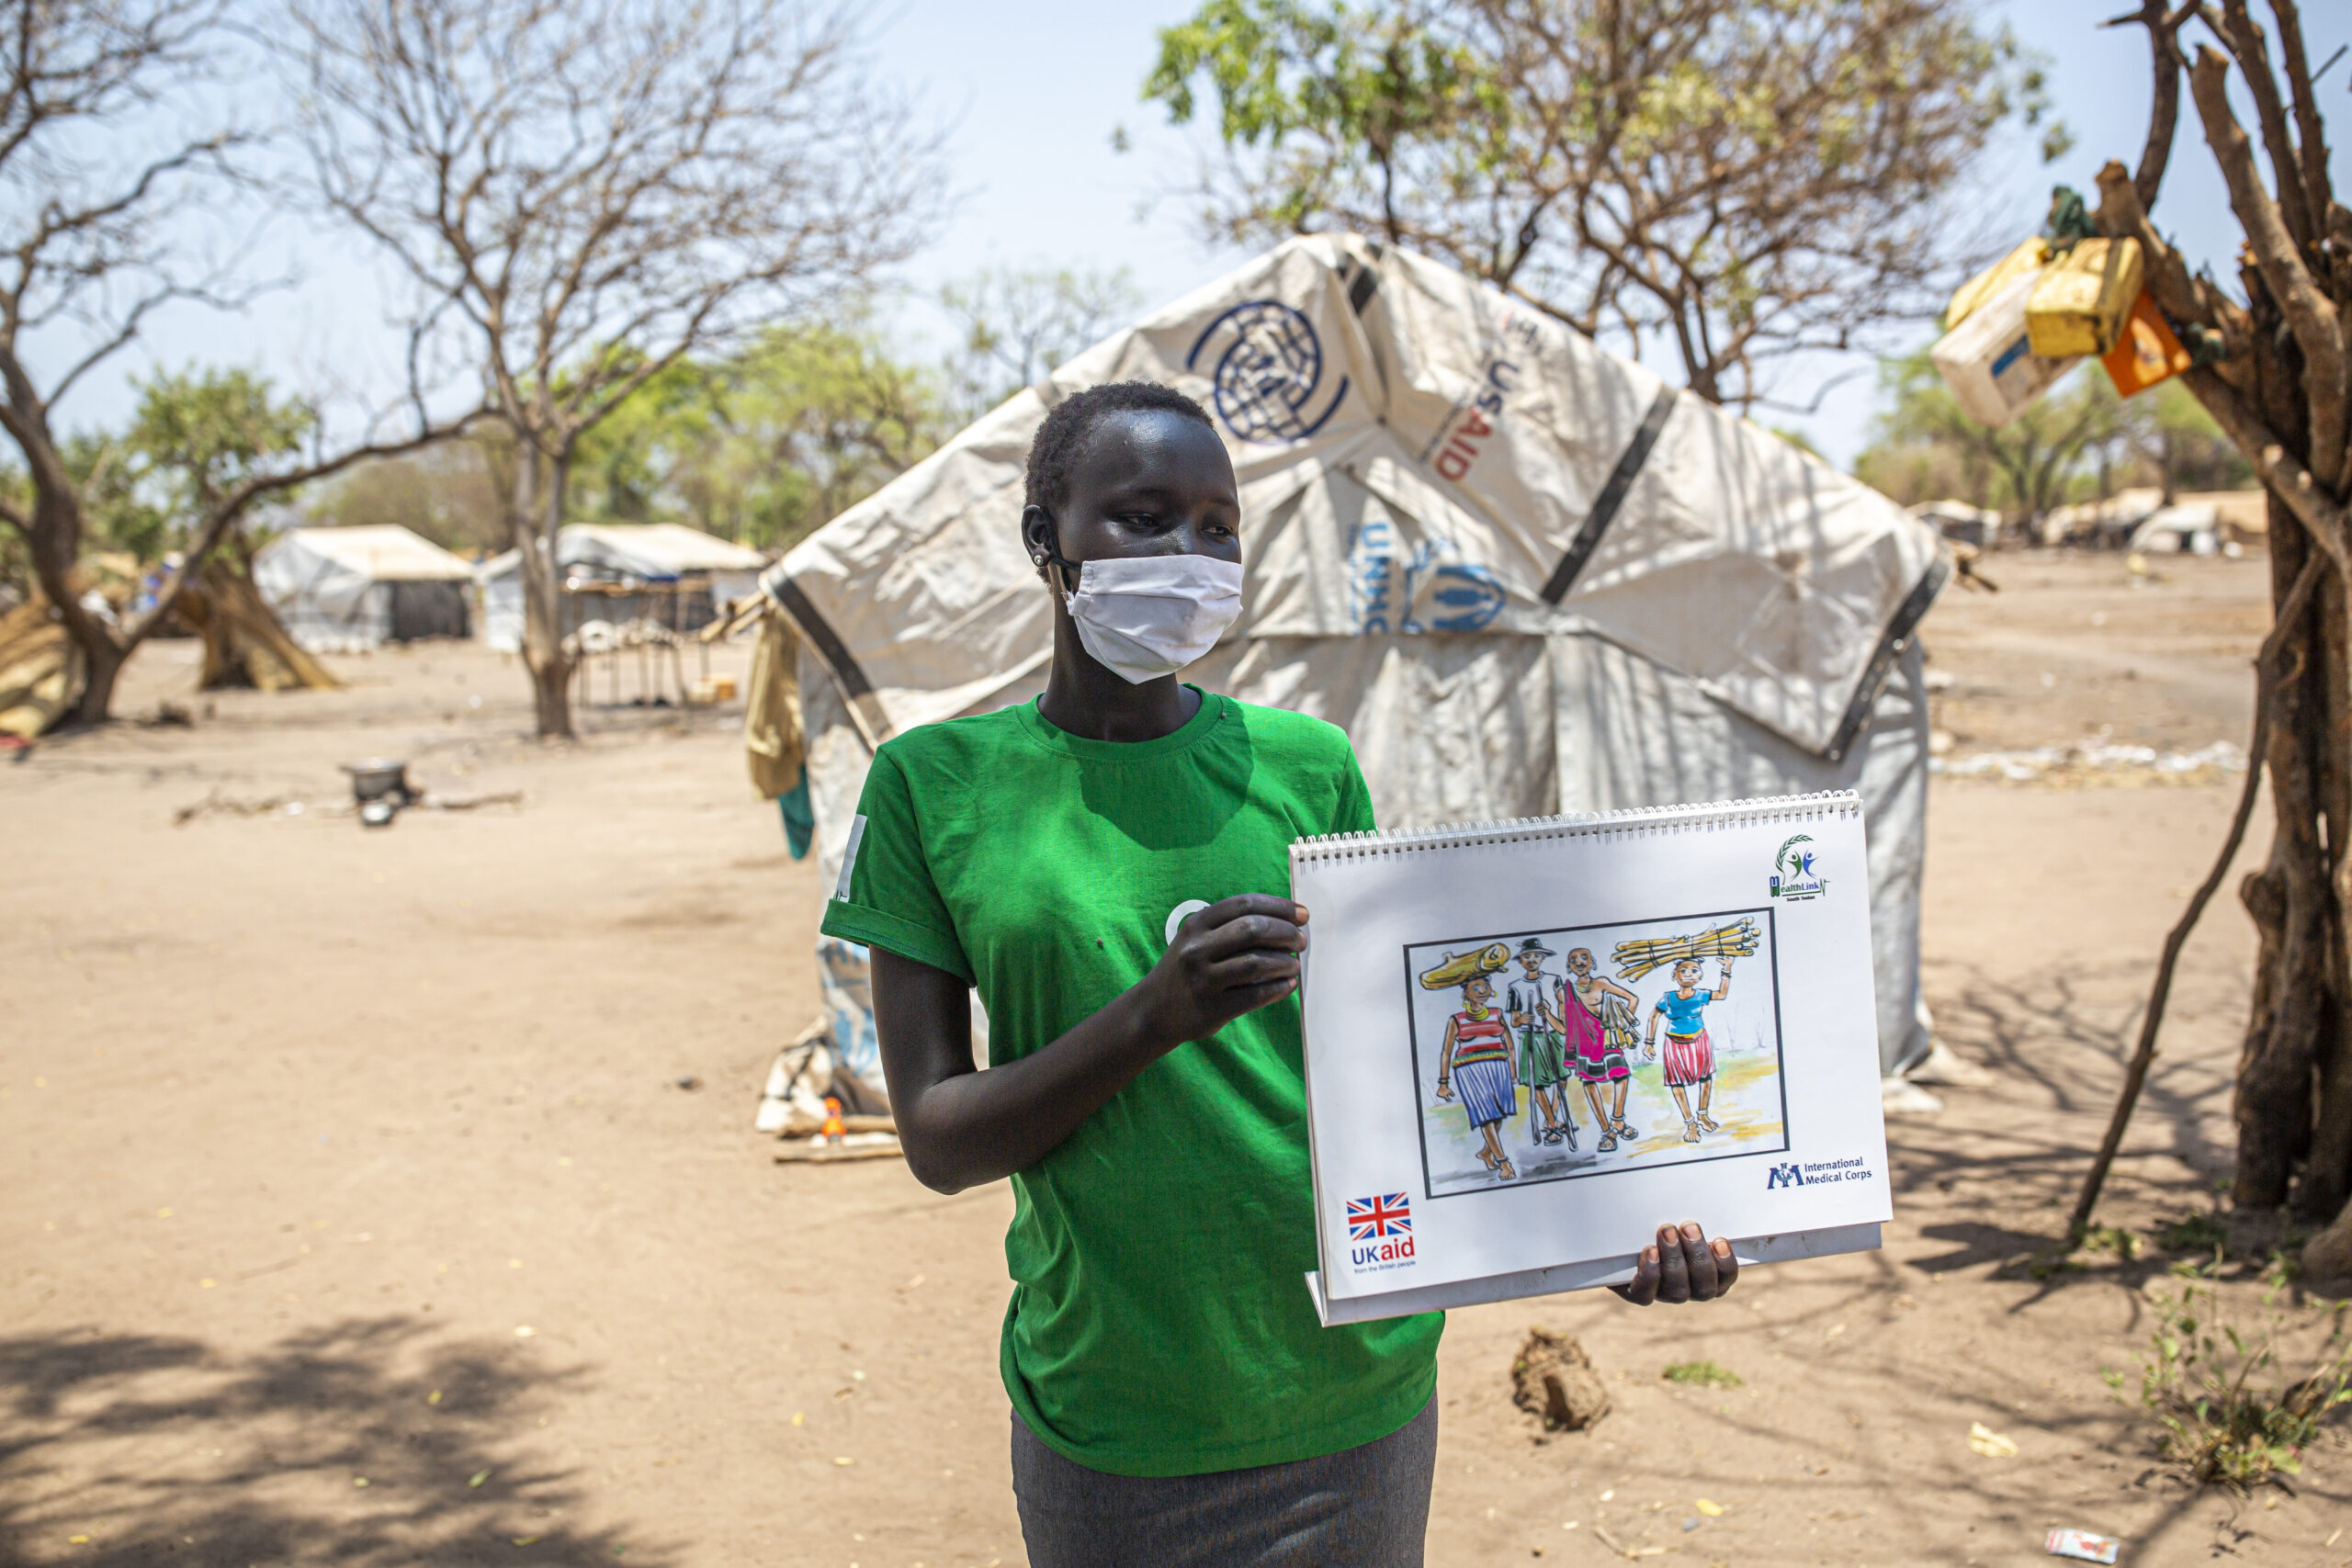 SASA activist from Health Link South Sudan talk to community leaders about GBV in Mangalla, South Sudan, on March 13, 2021.